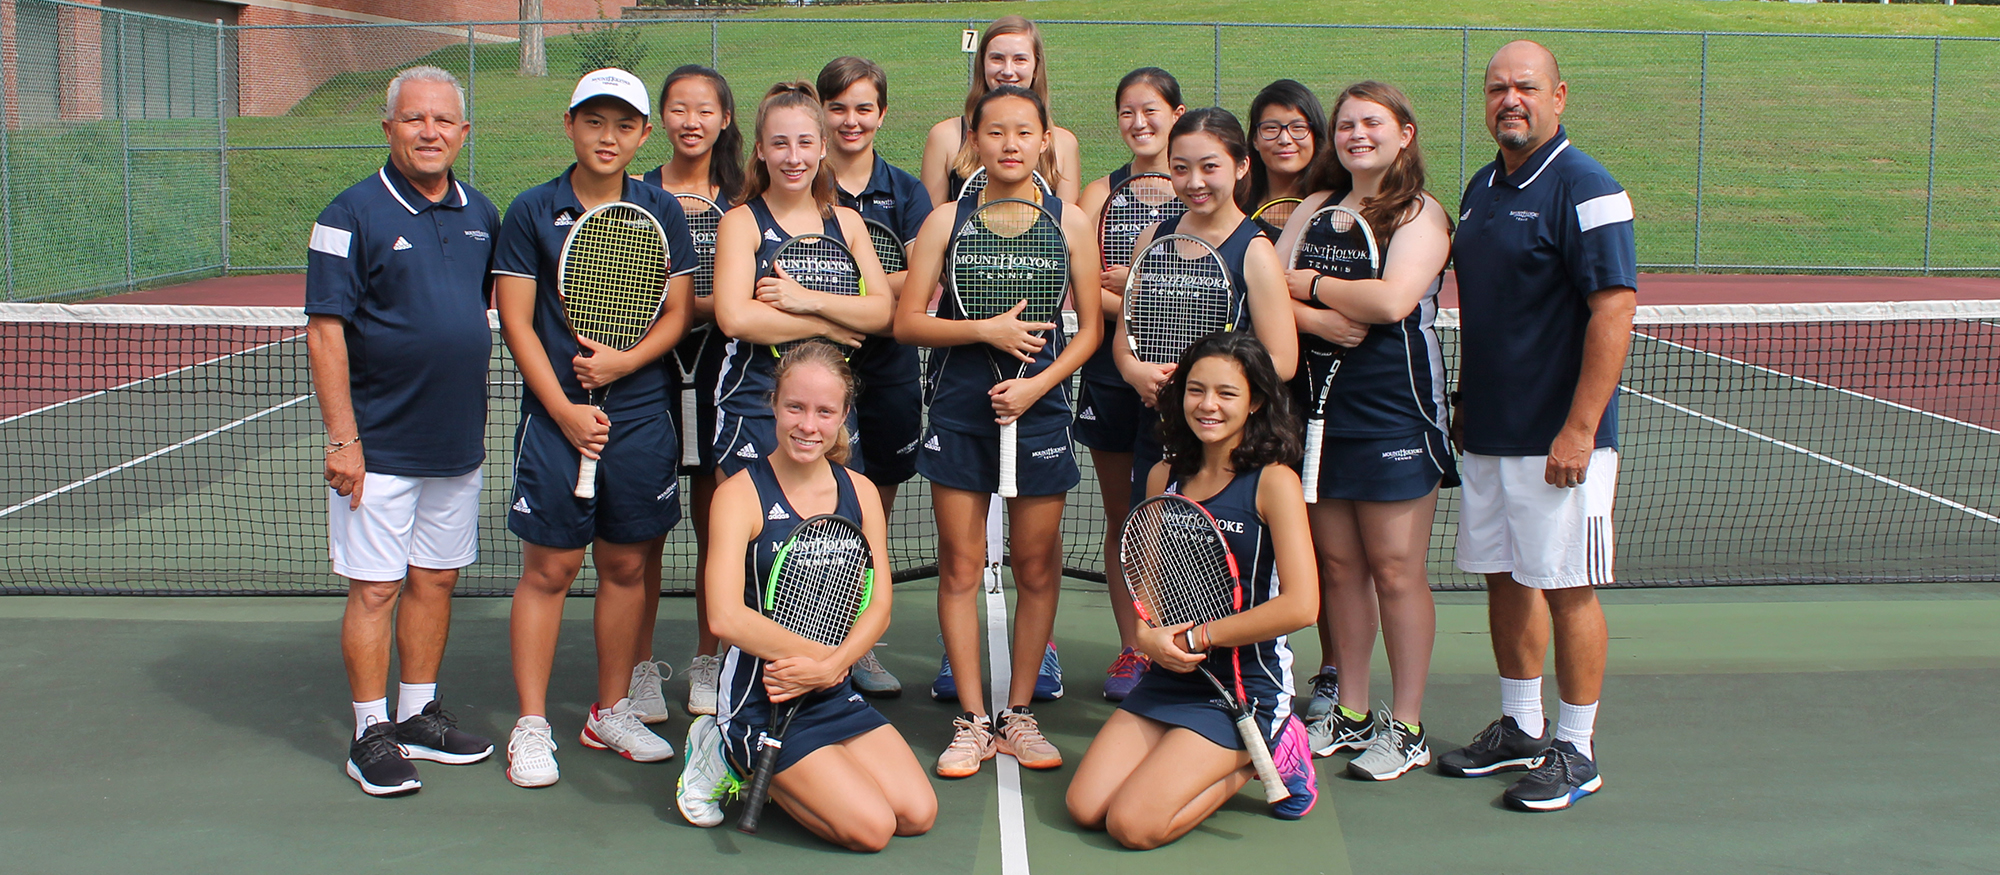 Photo of the 2018-19 Lyons Tennis Team.